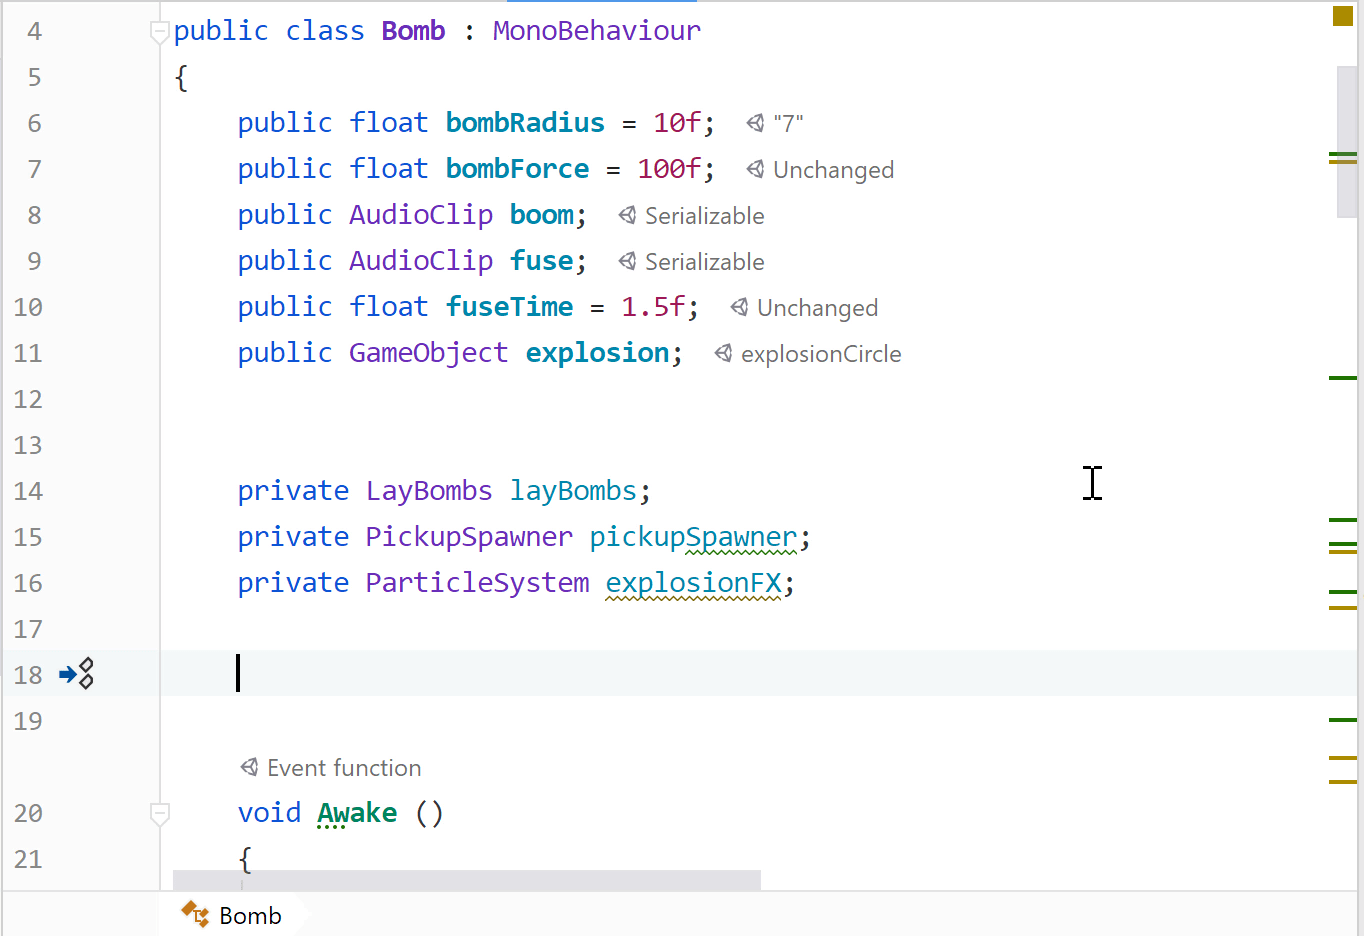 Generate Event Function